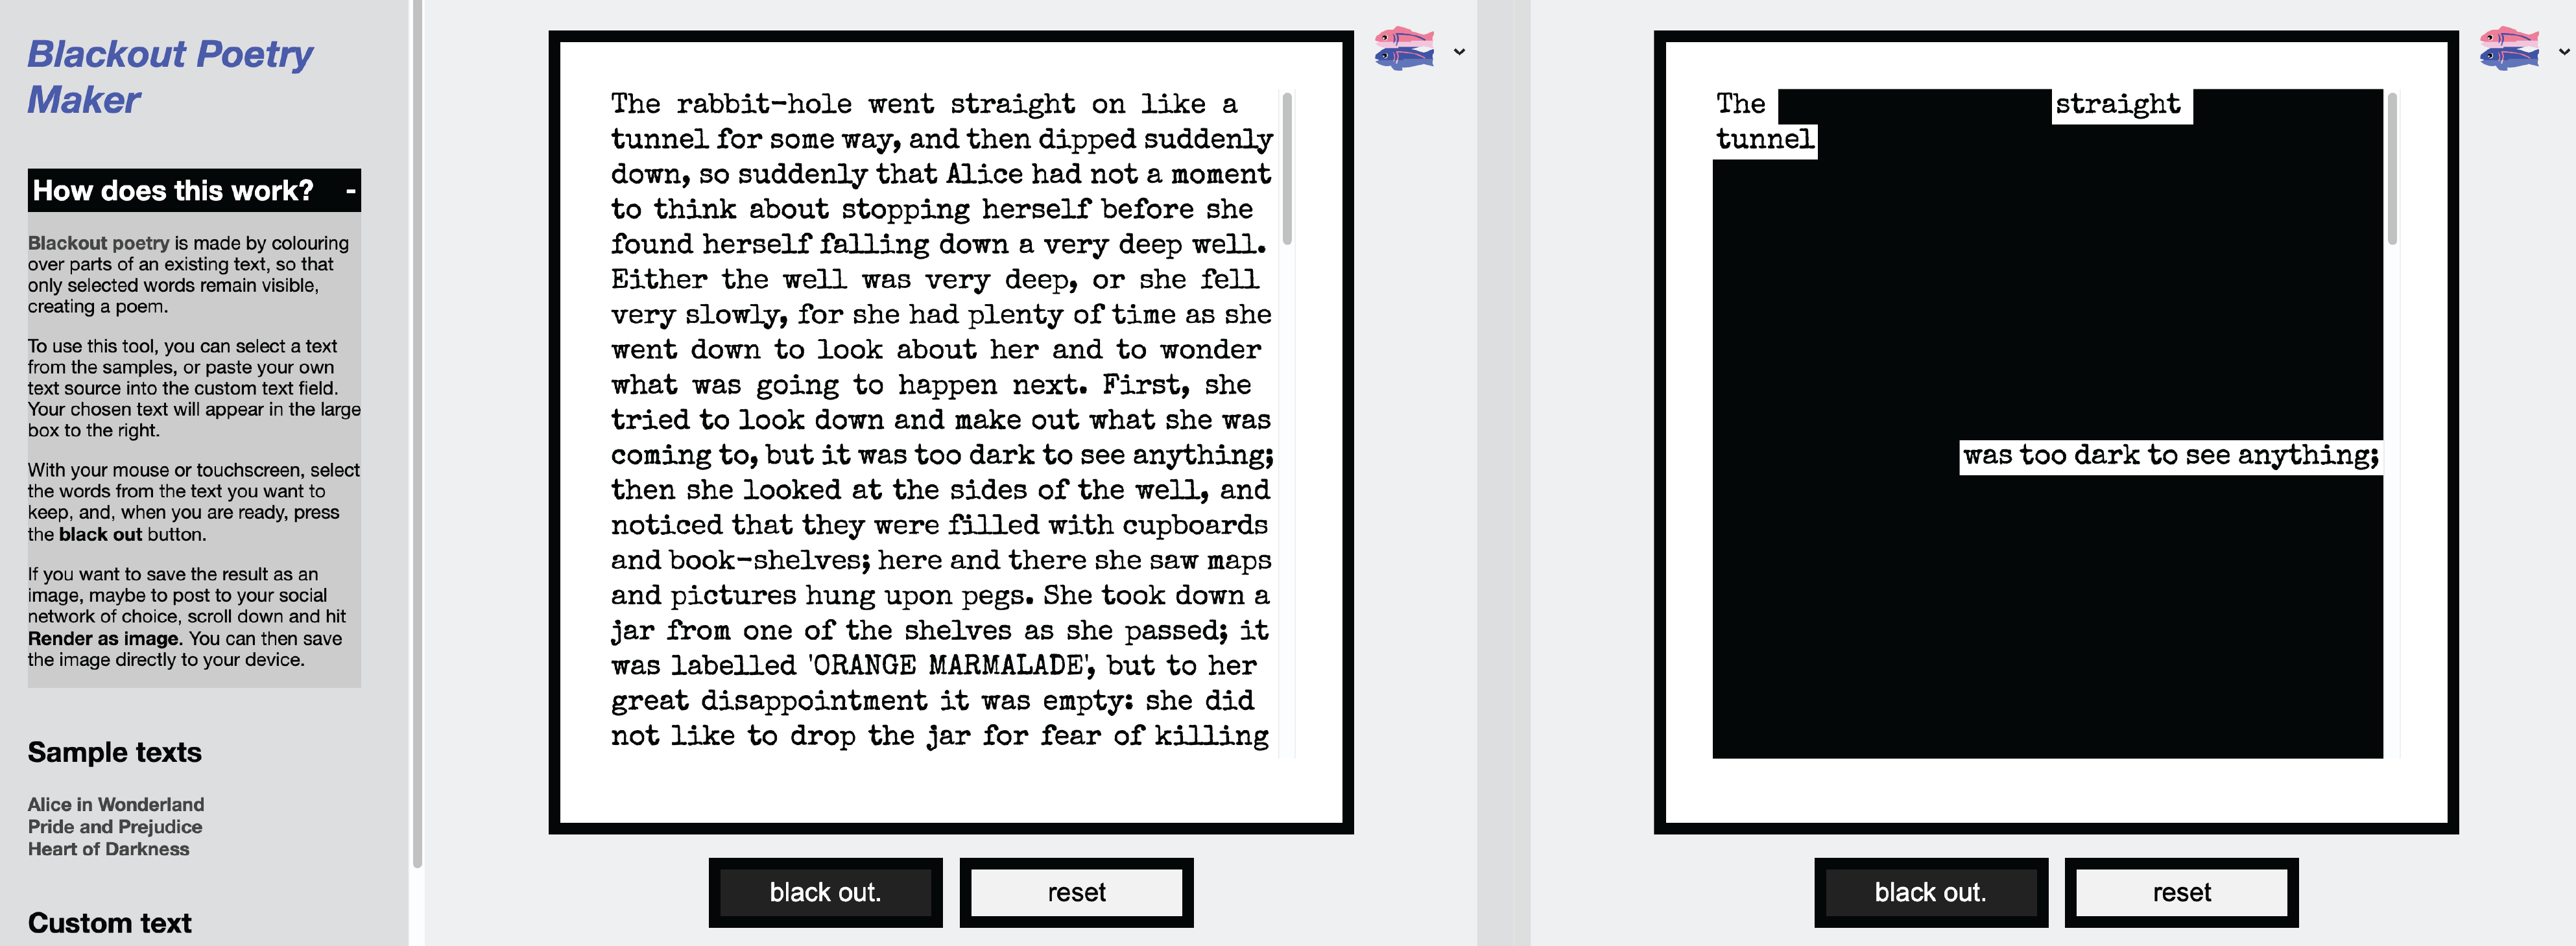 Make blackout poetry on Blackout Poetry Maker.